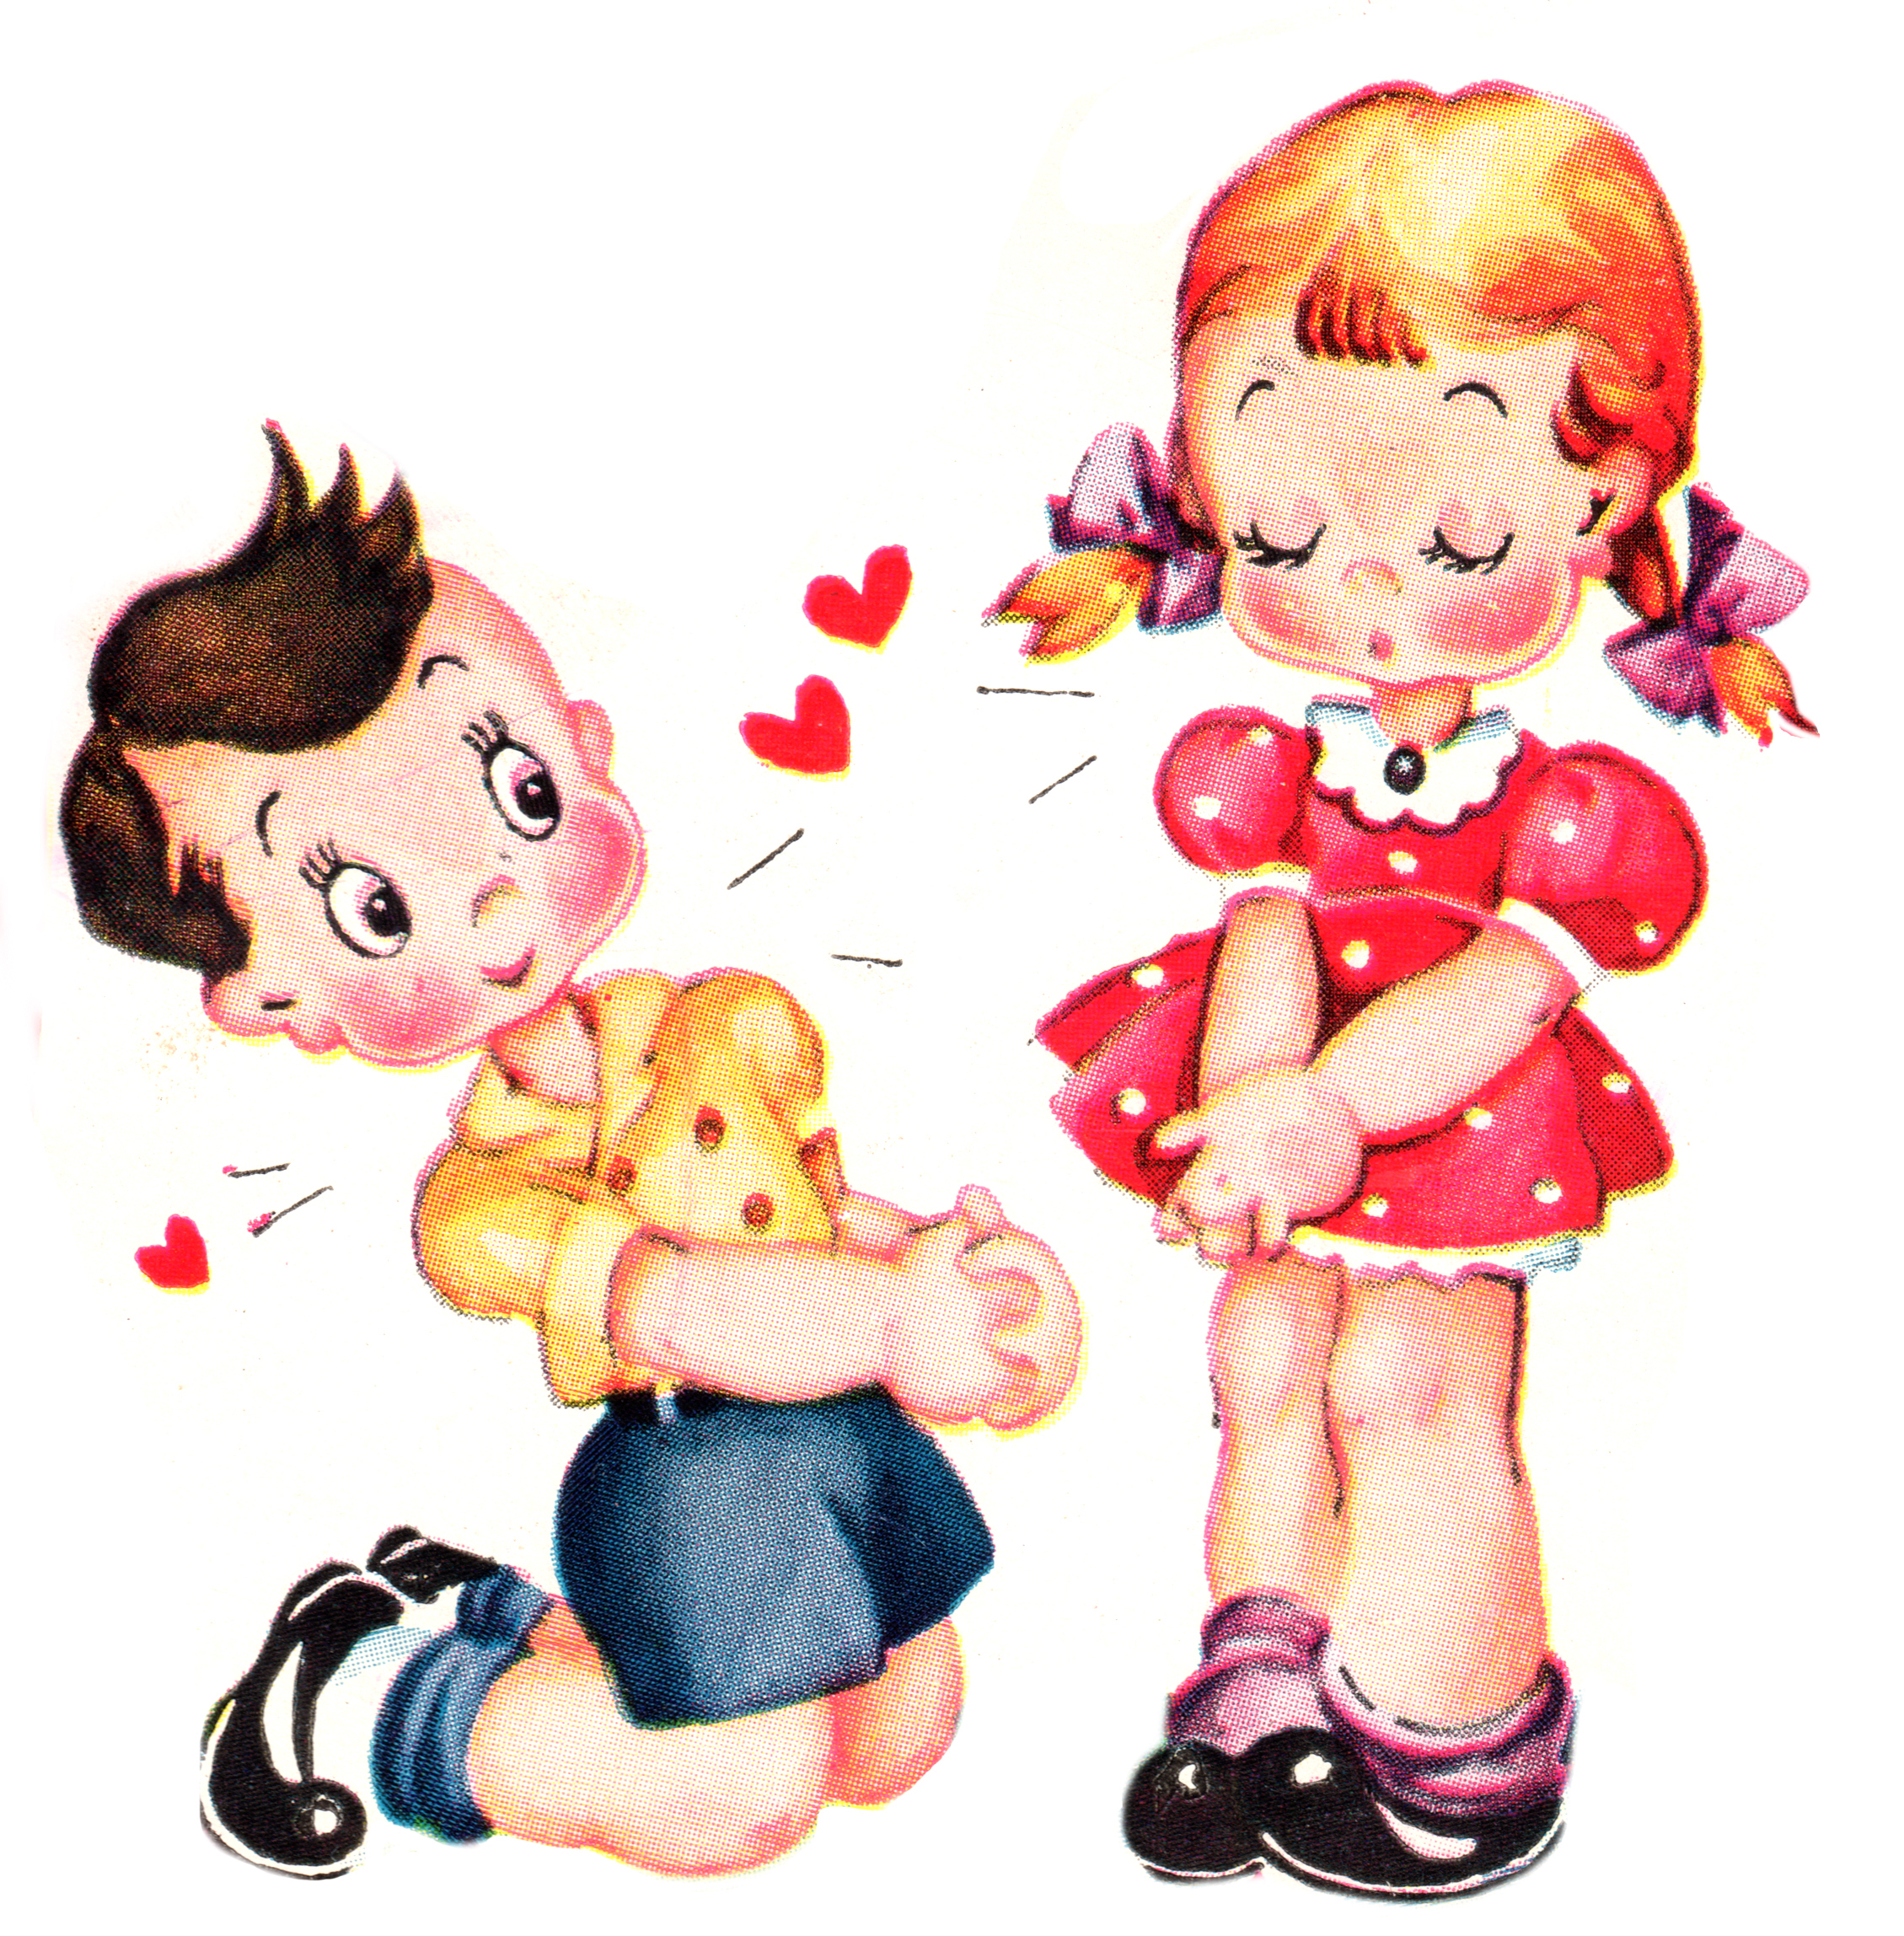 Cute Vintage Valentines Day Clip Art - Free Pretty Things For You - Free Printable Vintage Valentine Clip Art